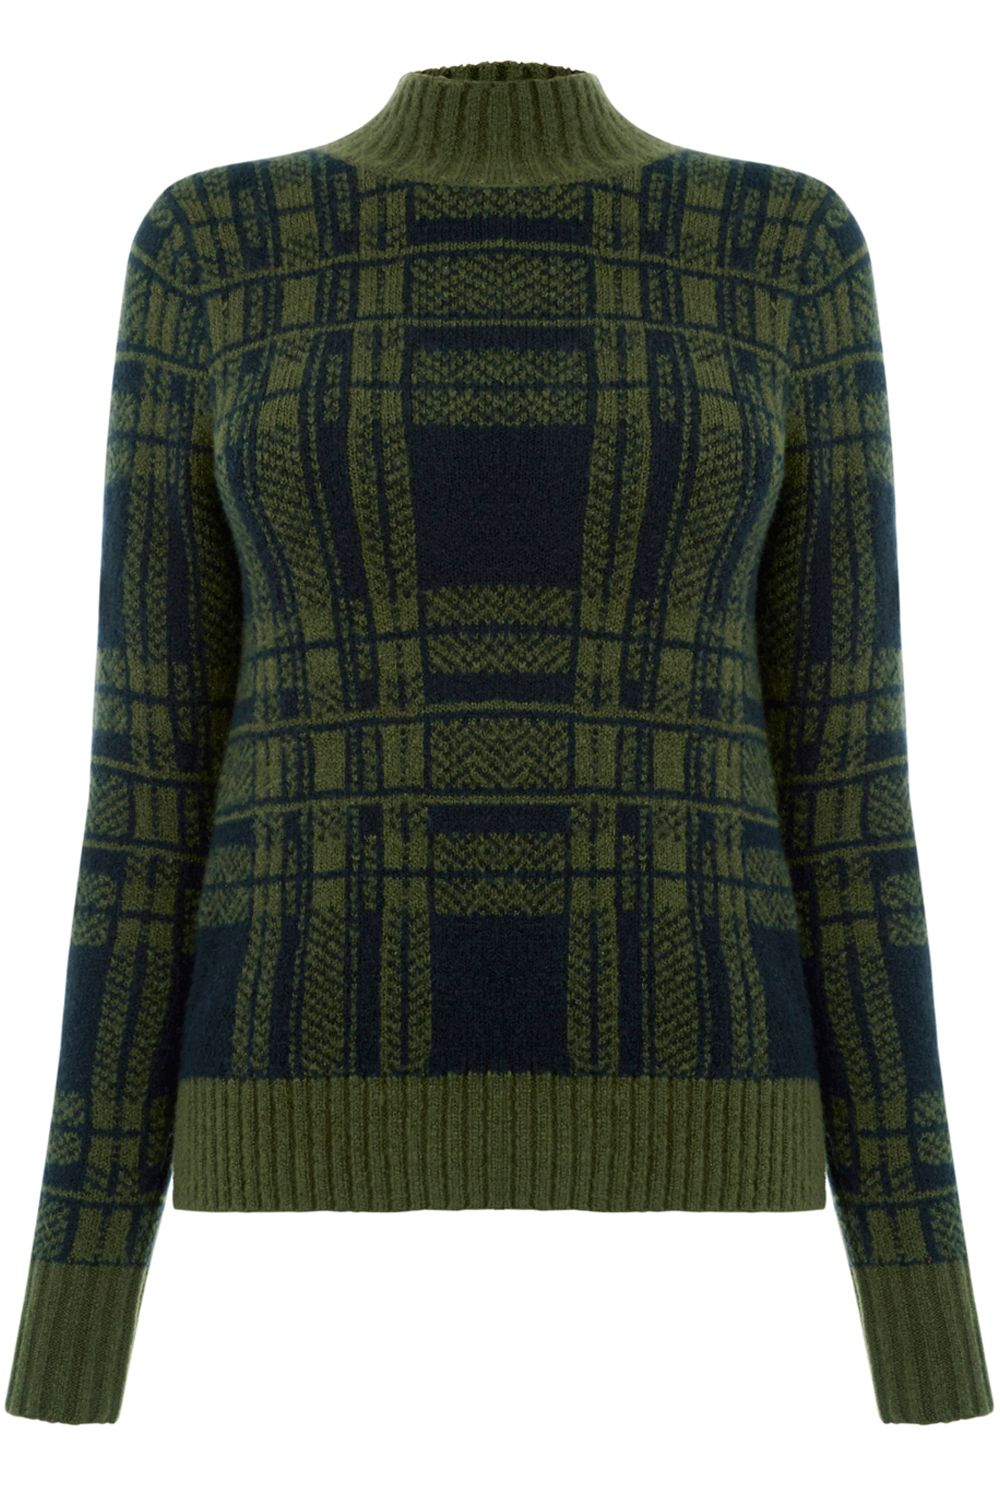 1960s Style Sweaters & Cardigans Oasis Military Check Jumper Khaki £38.00 AT vintagedancer.com